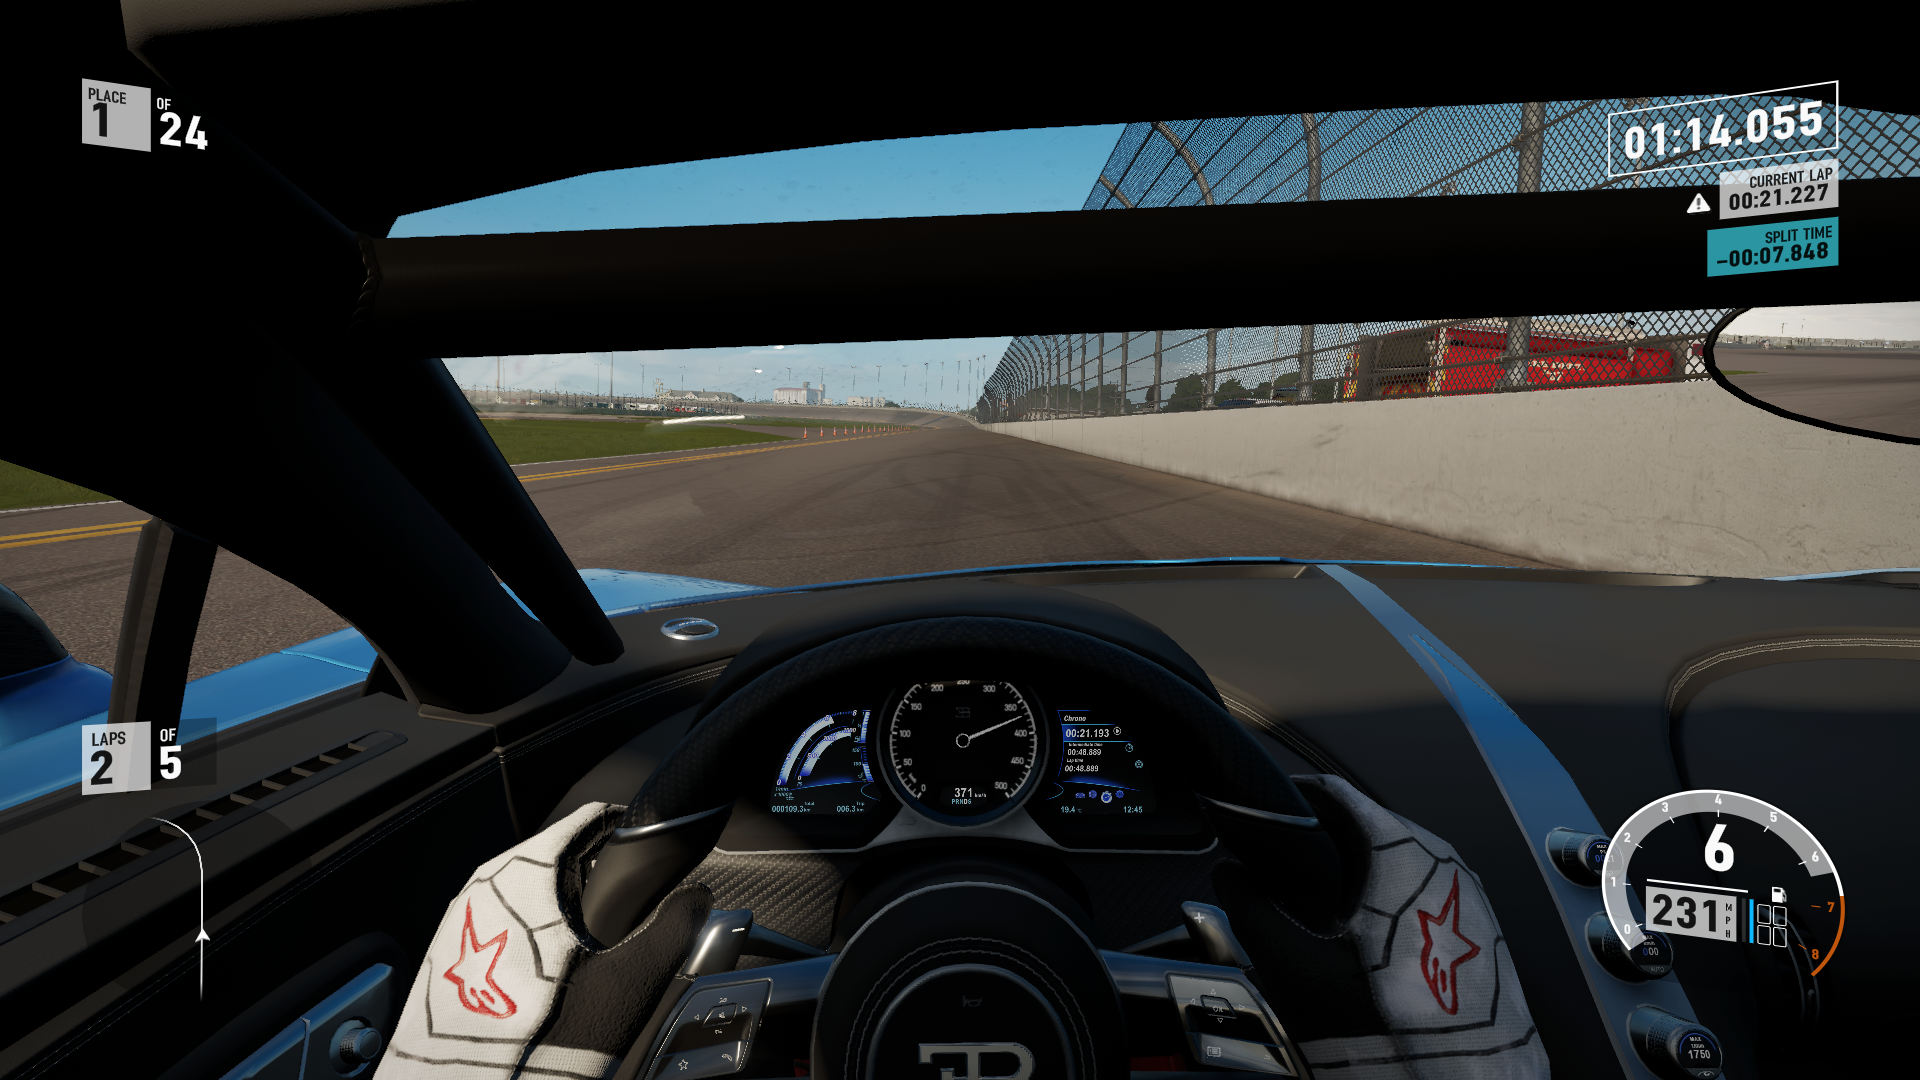 Forza Motorsport 7 2018 Bugatti Chiron Xbox One The Speedo Indicates 231 Mph But